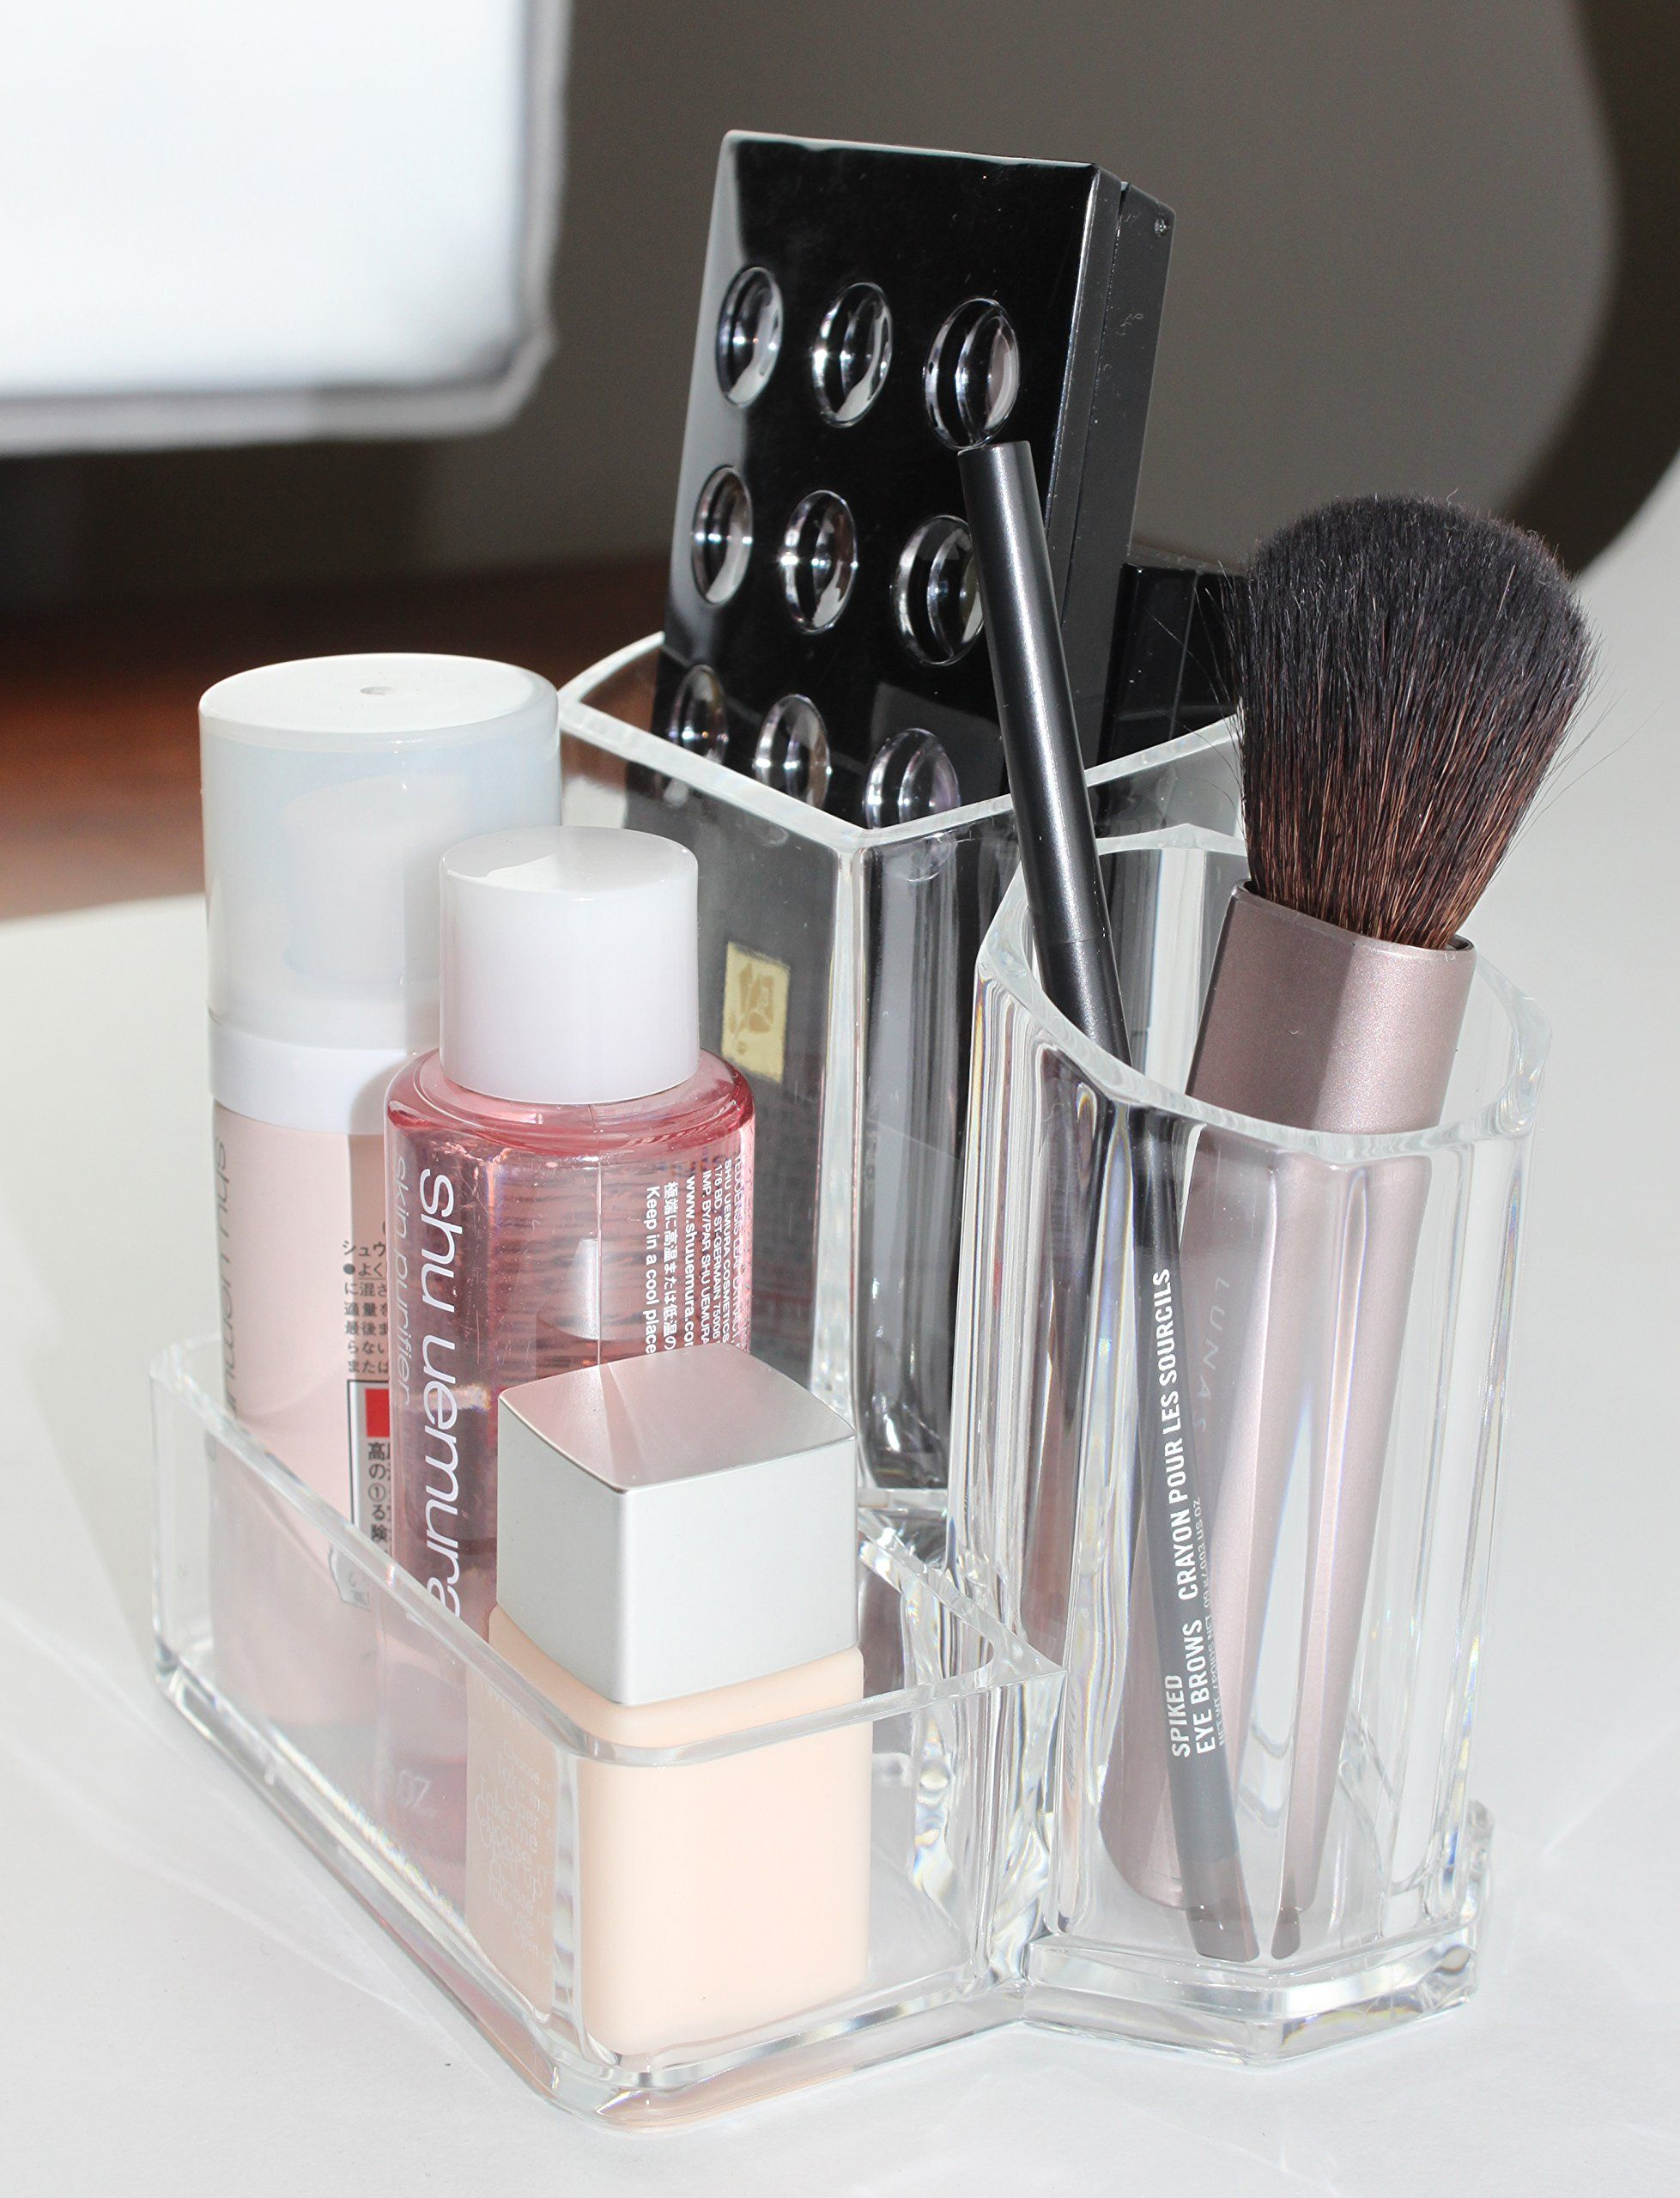 Premium Quality Clear Acrylic Makeup Brush And Accessory Holder With